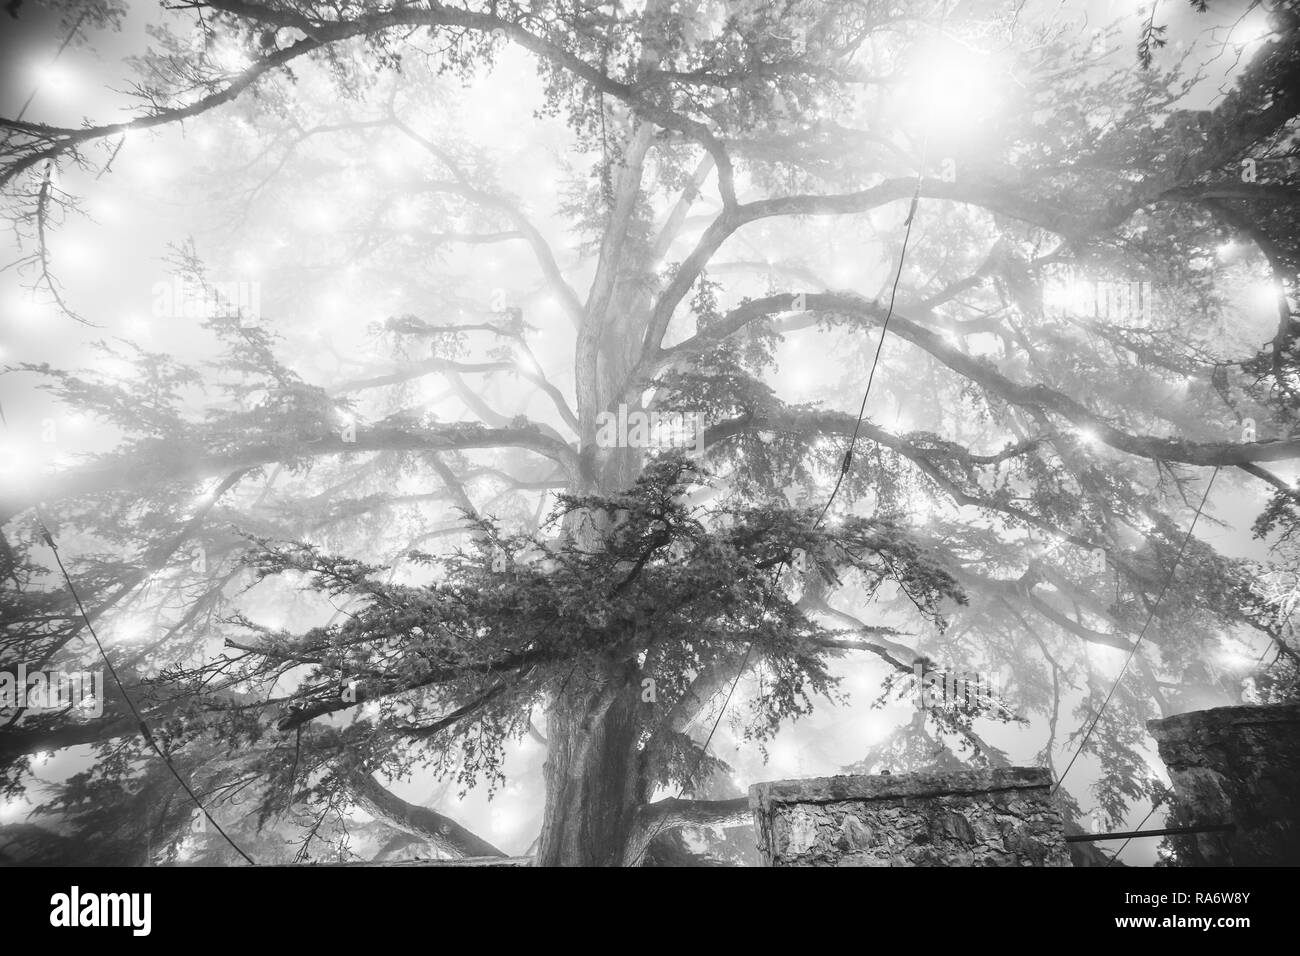 Black and white lighting effect of the biggest Christmas tree in the fog, photographed from below, Cison di Valmarino, Italy - Stock Image